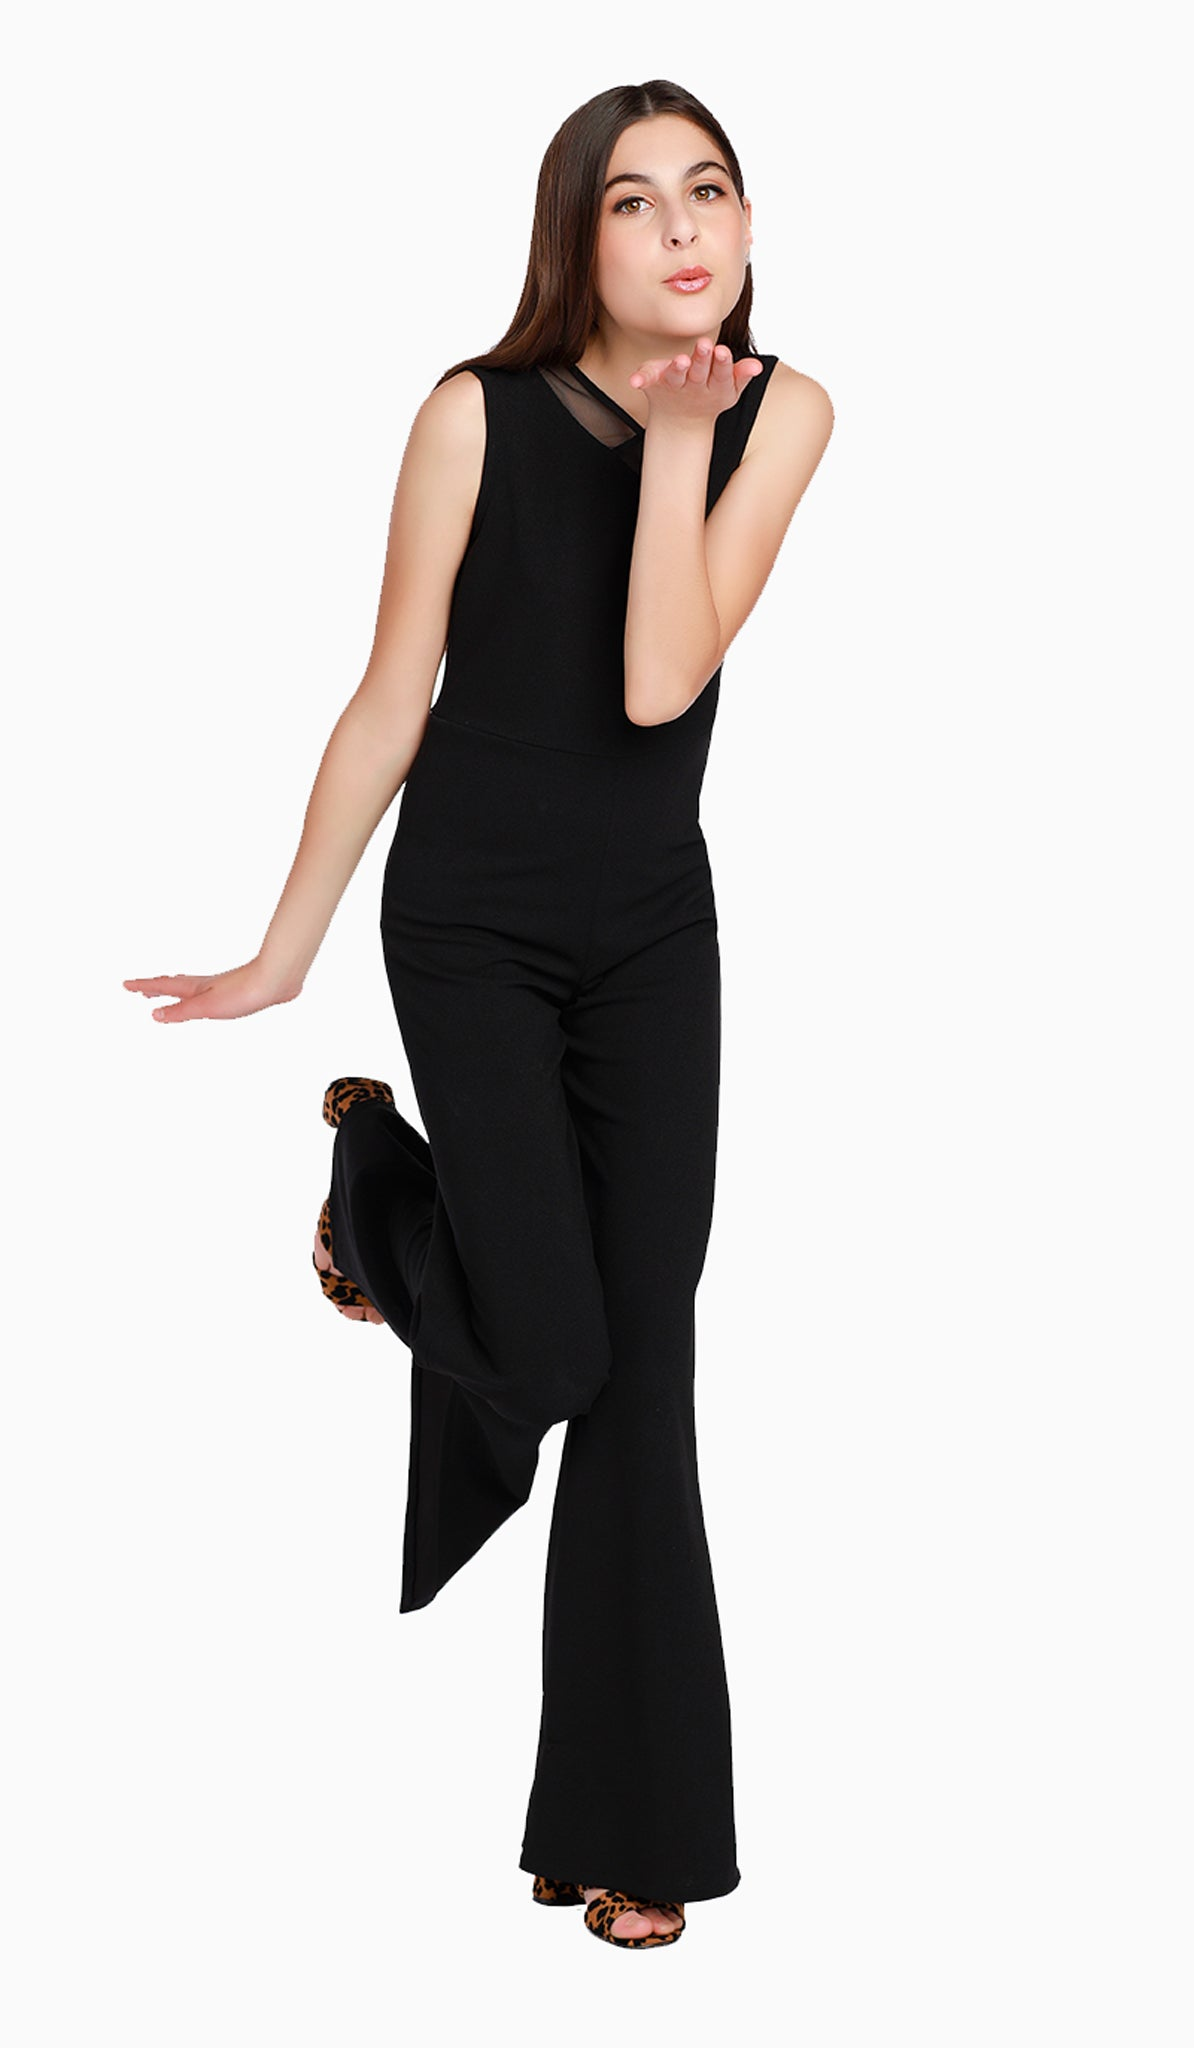 THE ALEXIS JUMPSUIT - Sallymiller.com - [variant title] - | Event & Party Dresses for Tween Girls & Juniors | Weddings Dresses, Bat Mitzvah Dresses, Sweet Sixteen Dresses, Graduation Dresses, Birthday Party Dresses, Bar Mitzvah Dresses, Cotillion Dresses